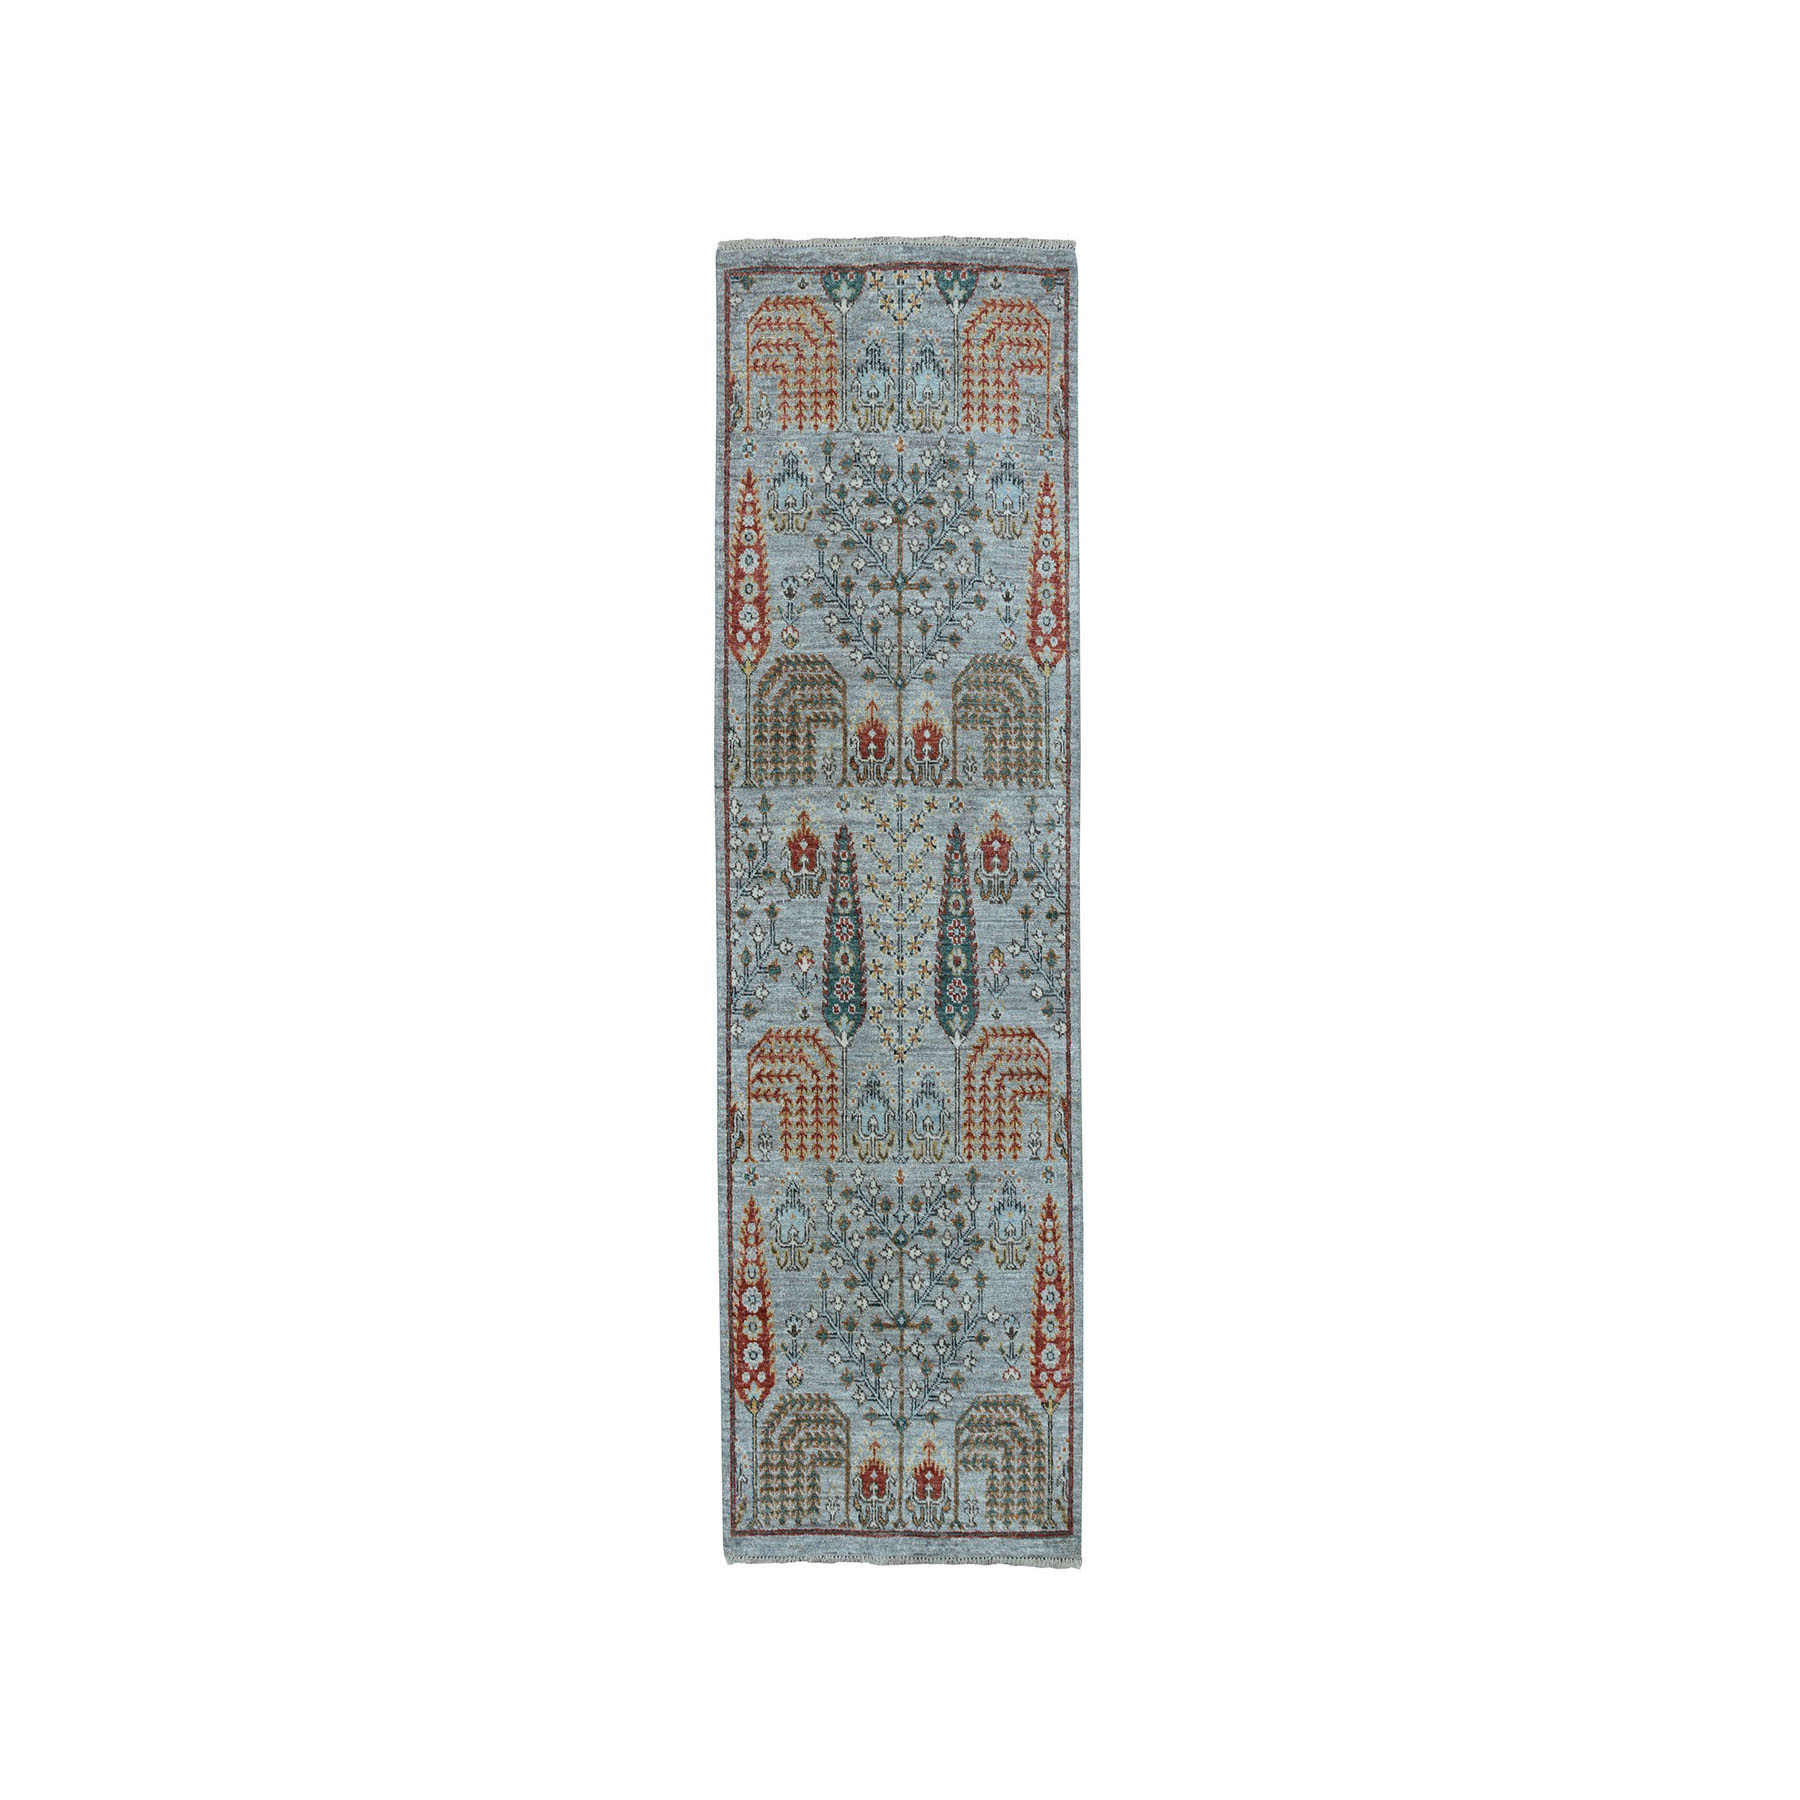 "2'6""x6'2"" Gray Peshawar Willow And Cypress Tree Design Hand-Knotted Oriental Runner Rug"